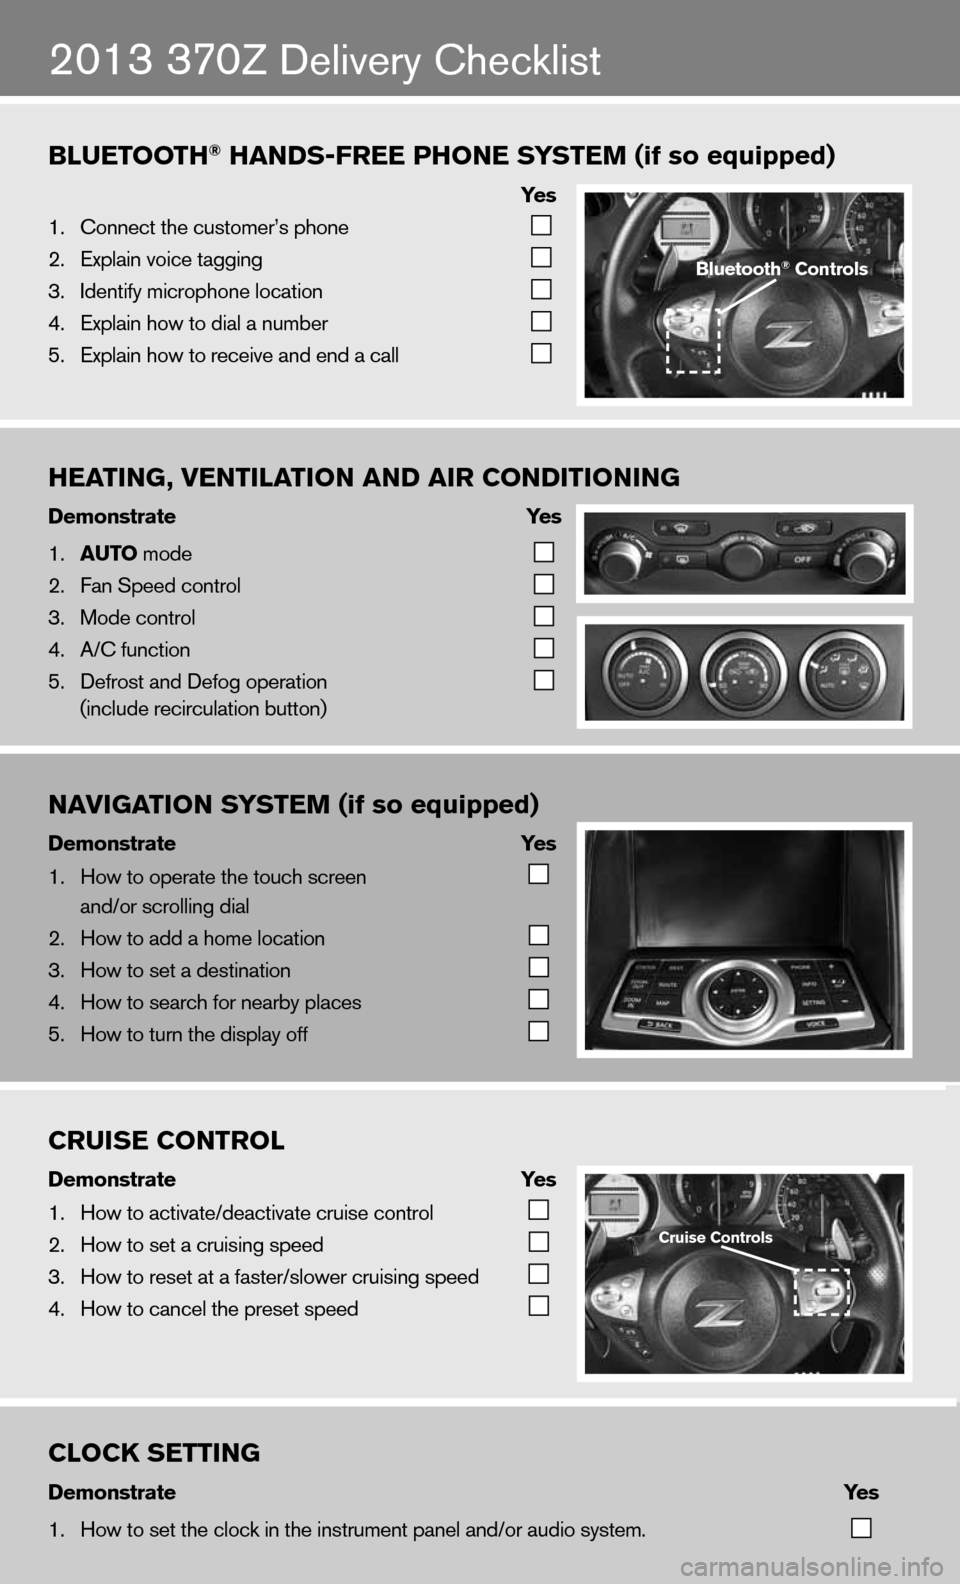 NISSAN 370Z ROADSTER 2013 Z34 Quick Reference Guide B\bUETOOTH® H\fNDS-FREE PHONE SYSTEM (if so equipped)            Ye s 1.   Connec\f \fhe cus\fomer\m's phone       2.   Explain voice \faggi\mng       3.   Iden\fify microphone\m loca\fion       4.